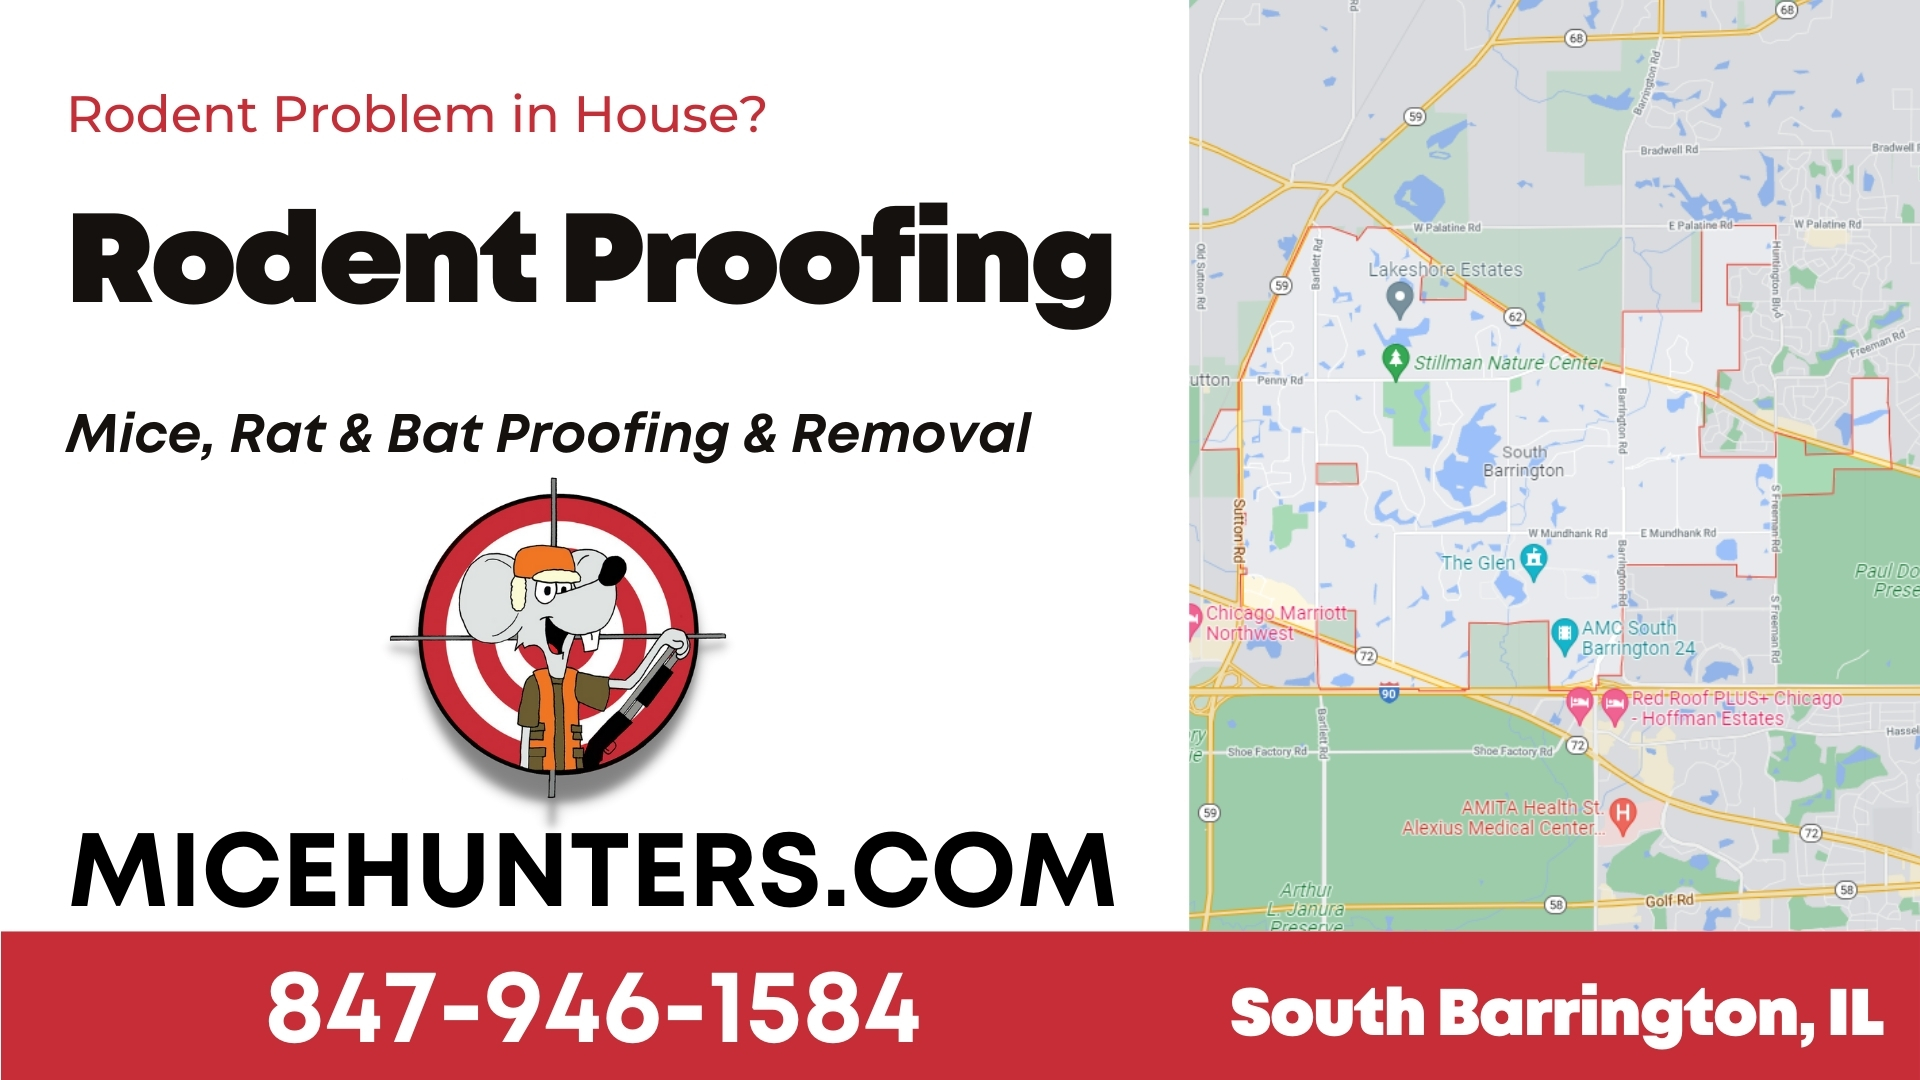 South Barrington Rodent and Mice Proofing Exterminator